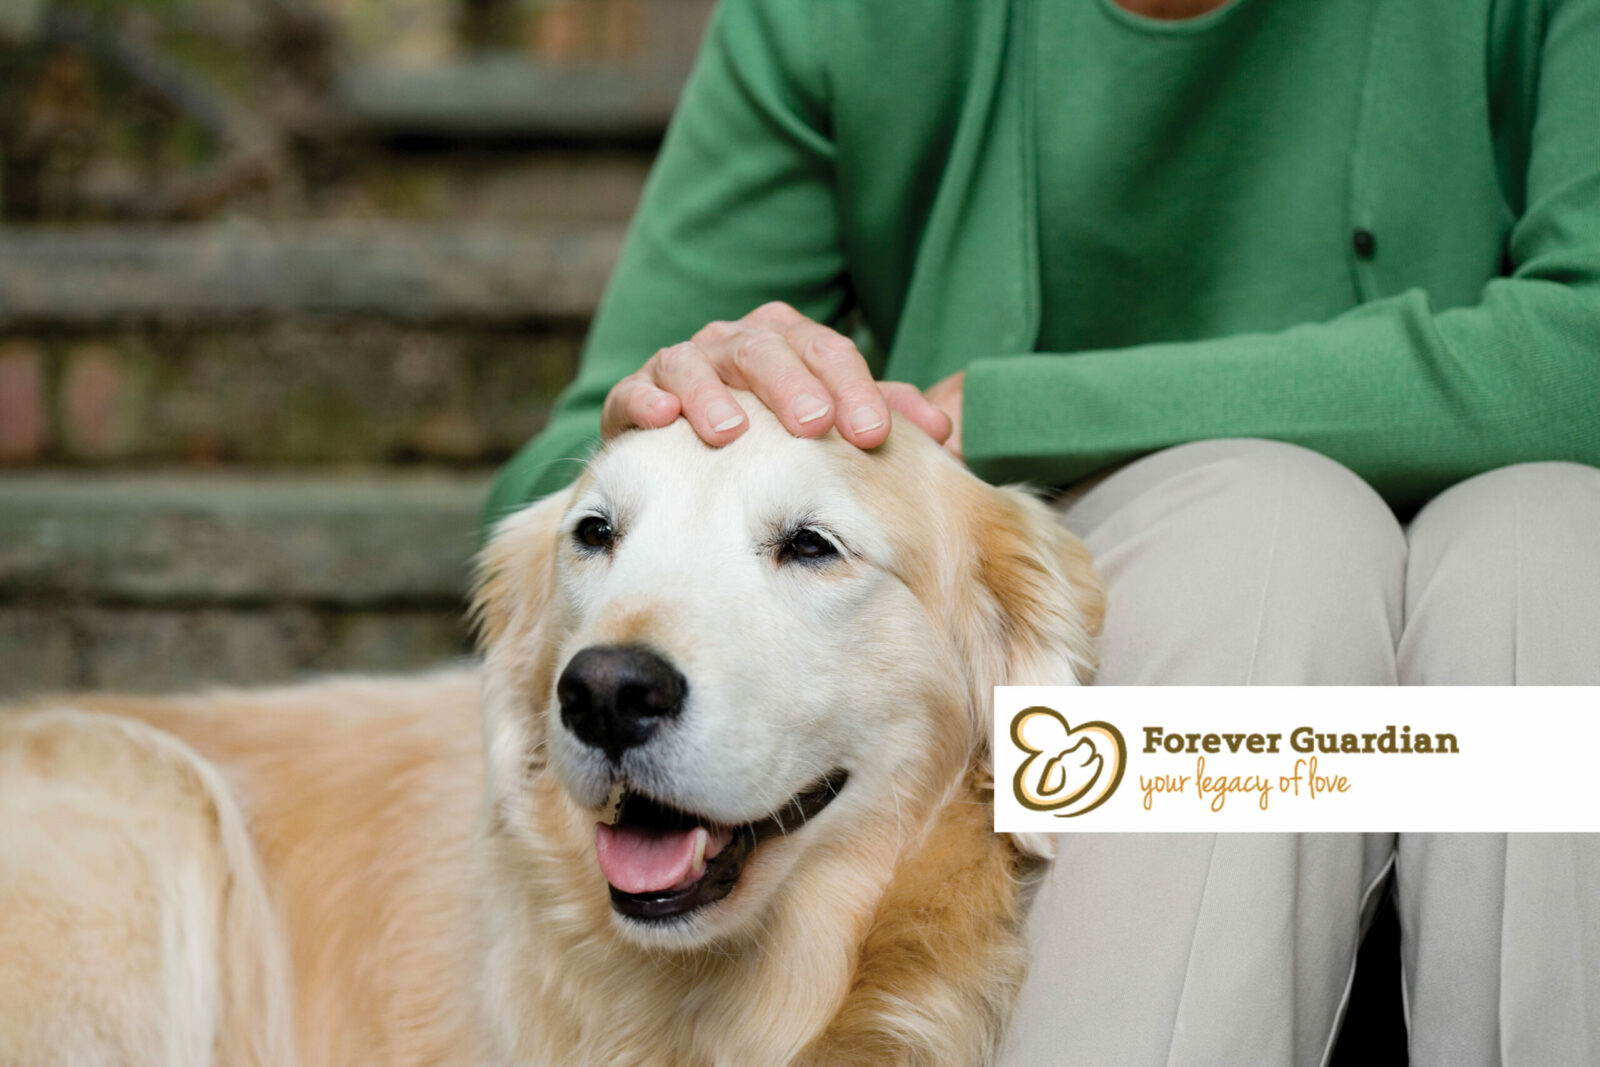 Seated women rests her hand on the head of the golden lab standing at her knee